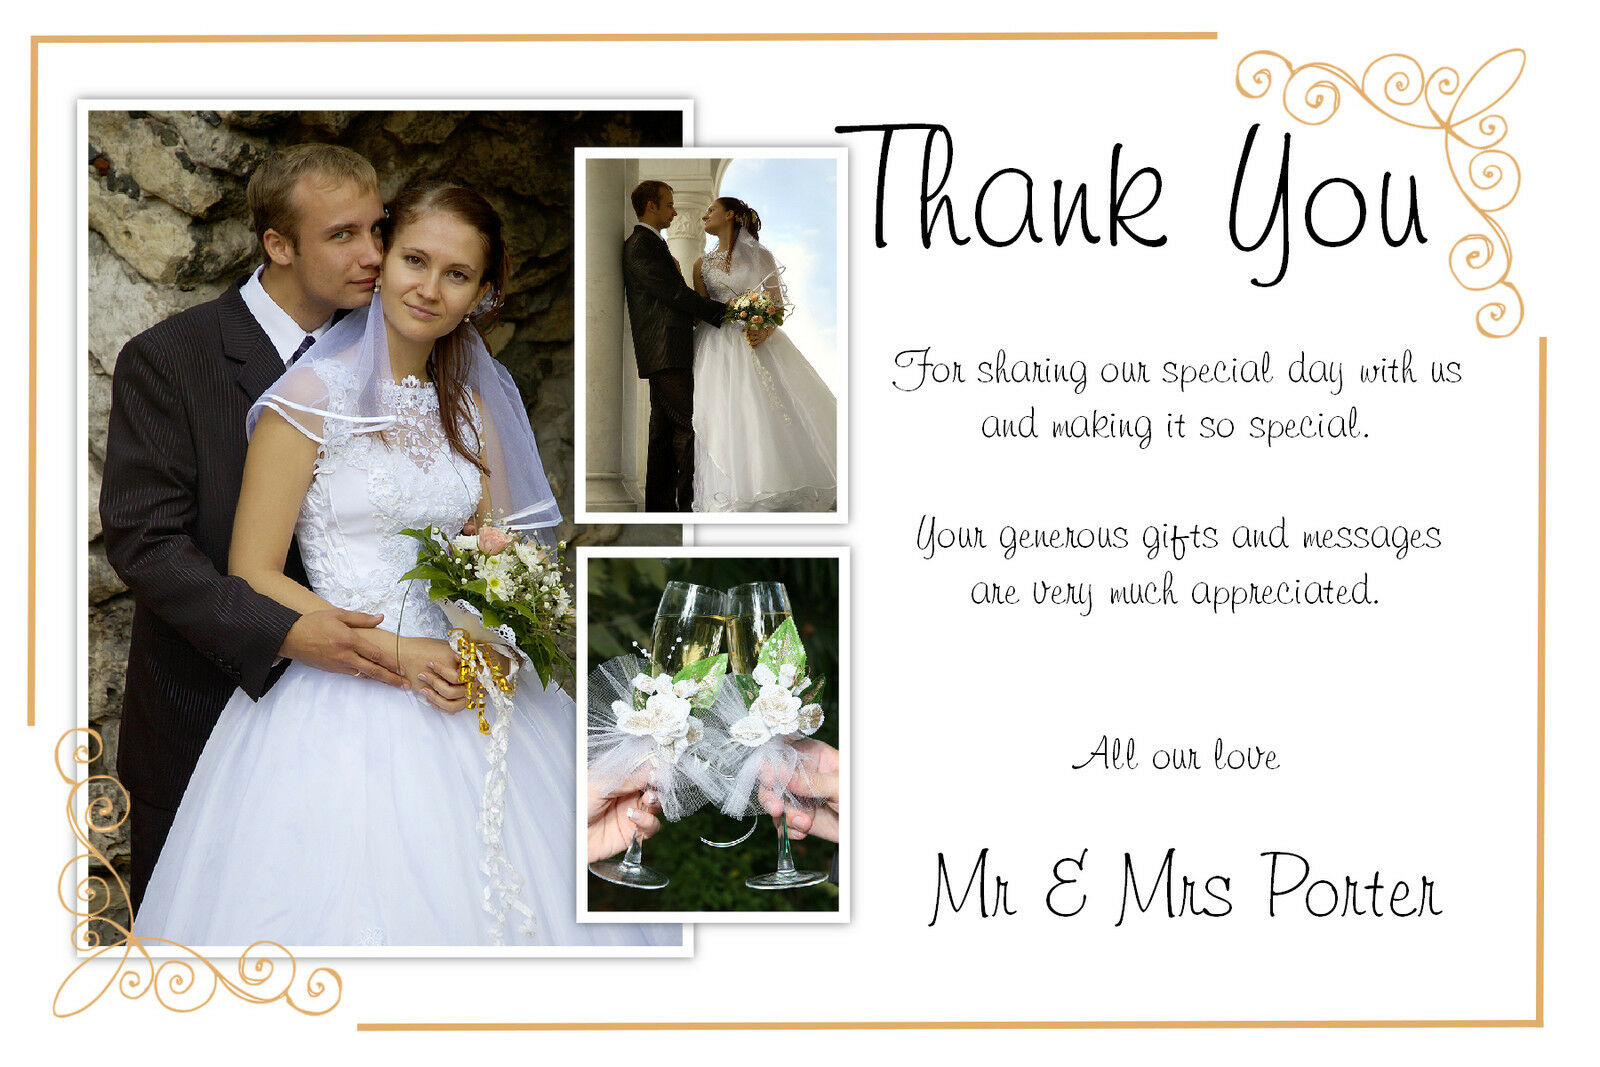 Thank You Letter For Wedding Gift: How Should I Word A Thank You Note For A Gift From Someone